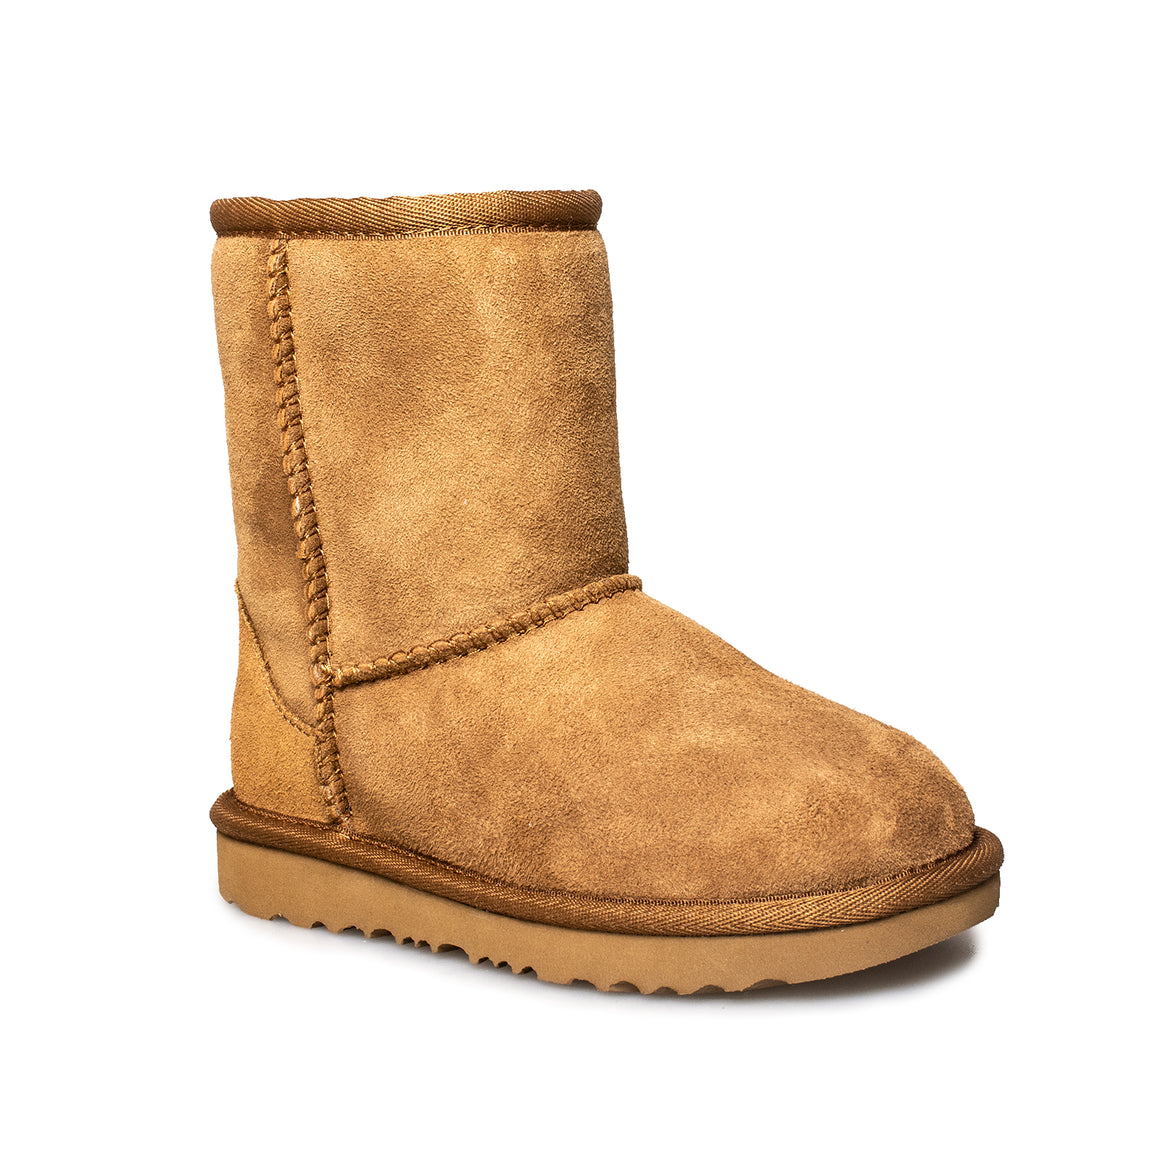 UGG Classic Short ii Chestnut Boots - Youth/Toddler's